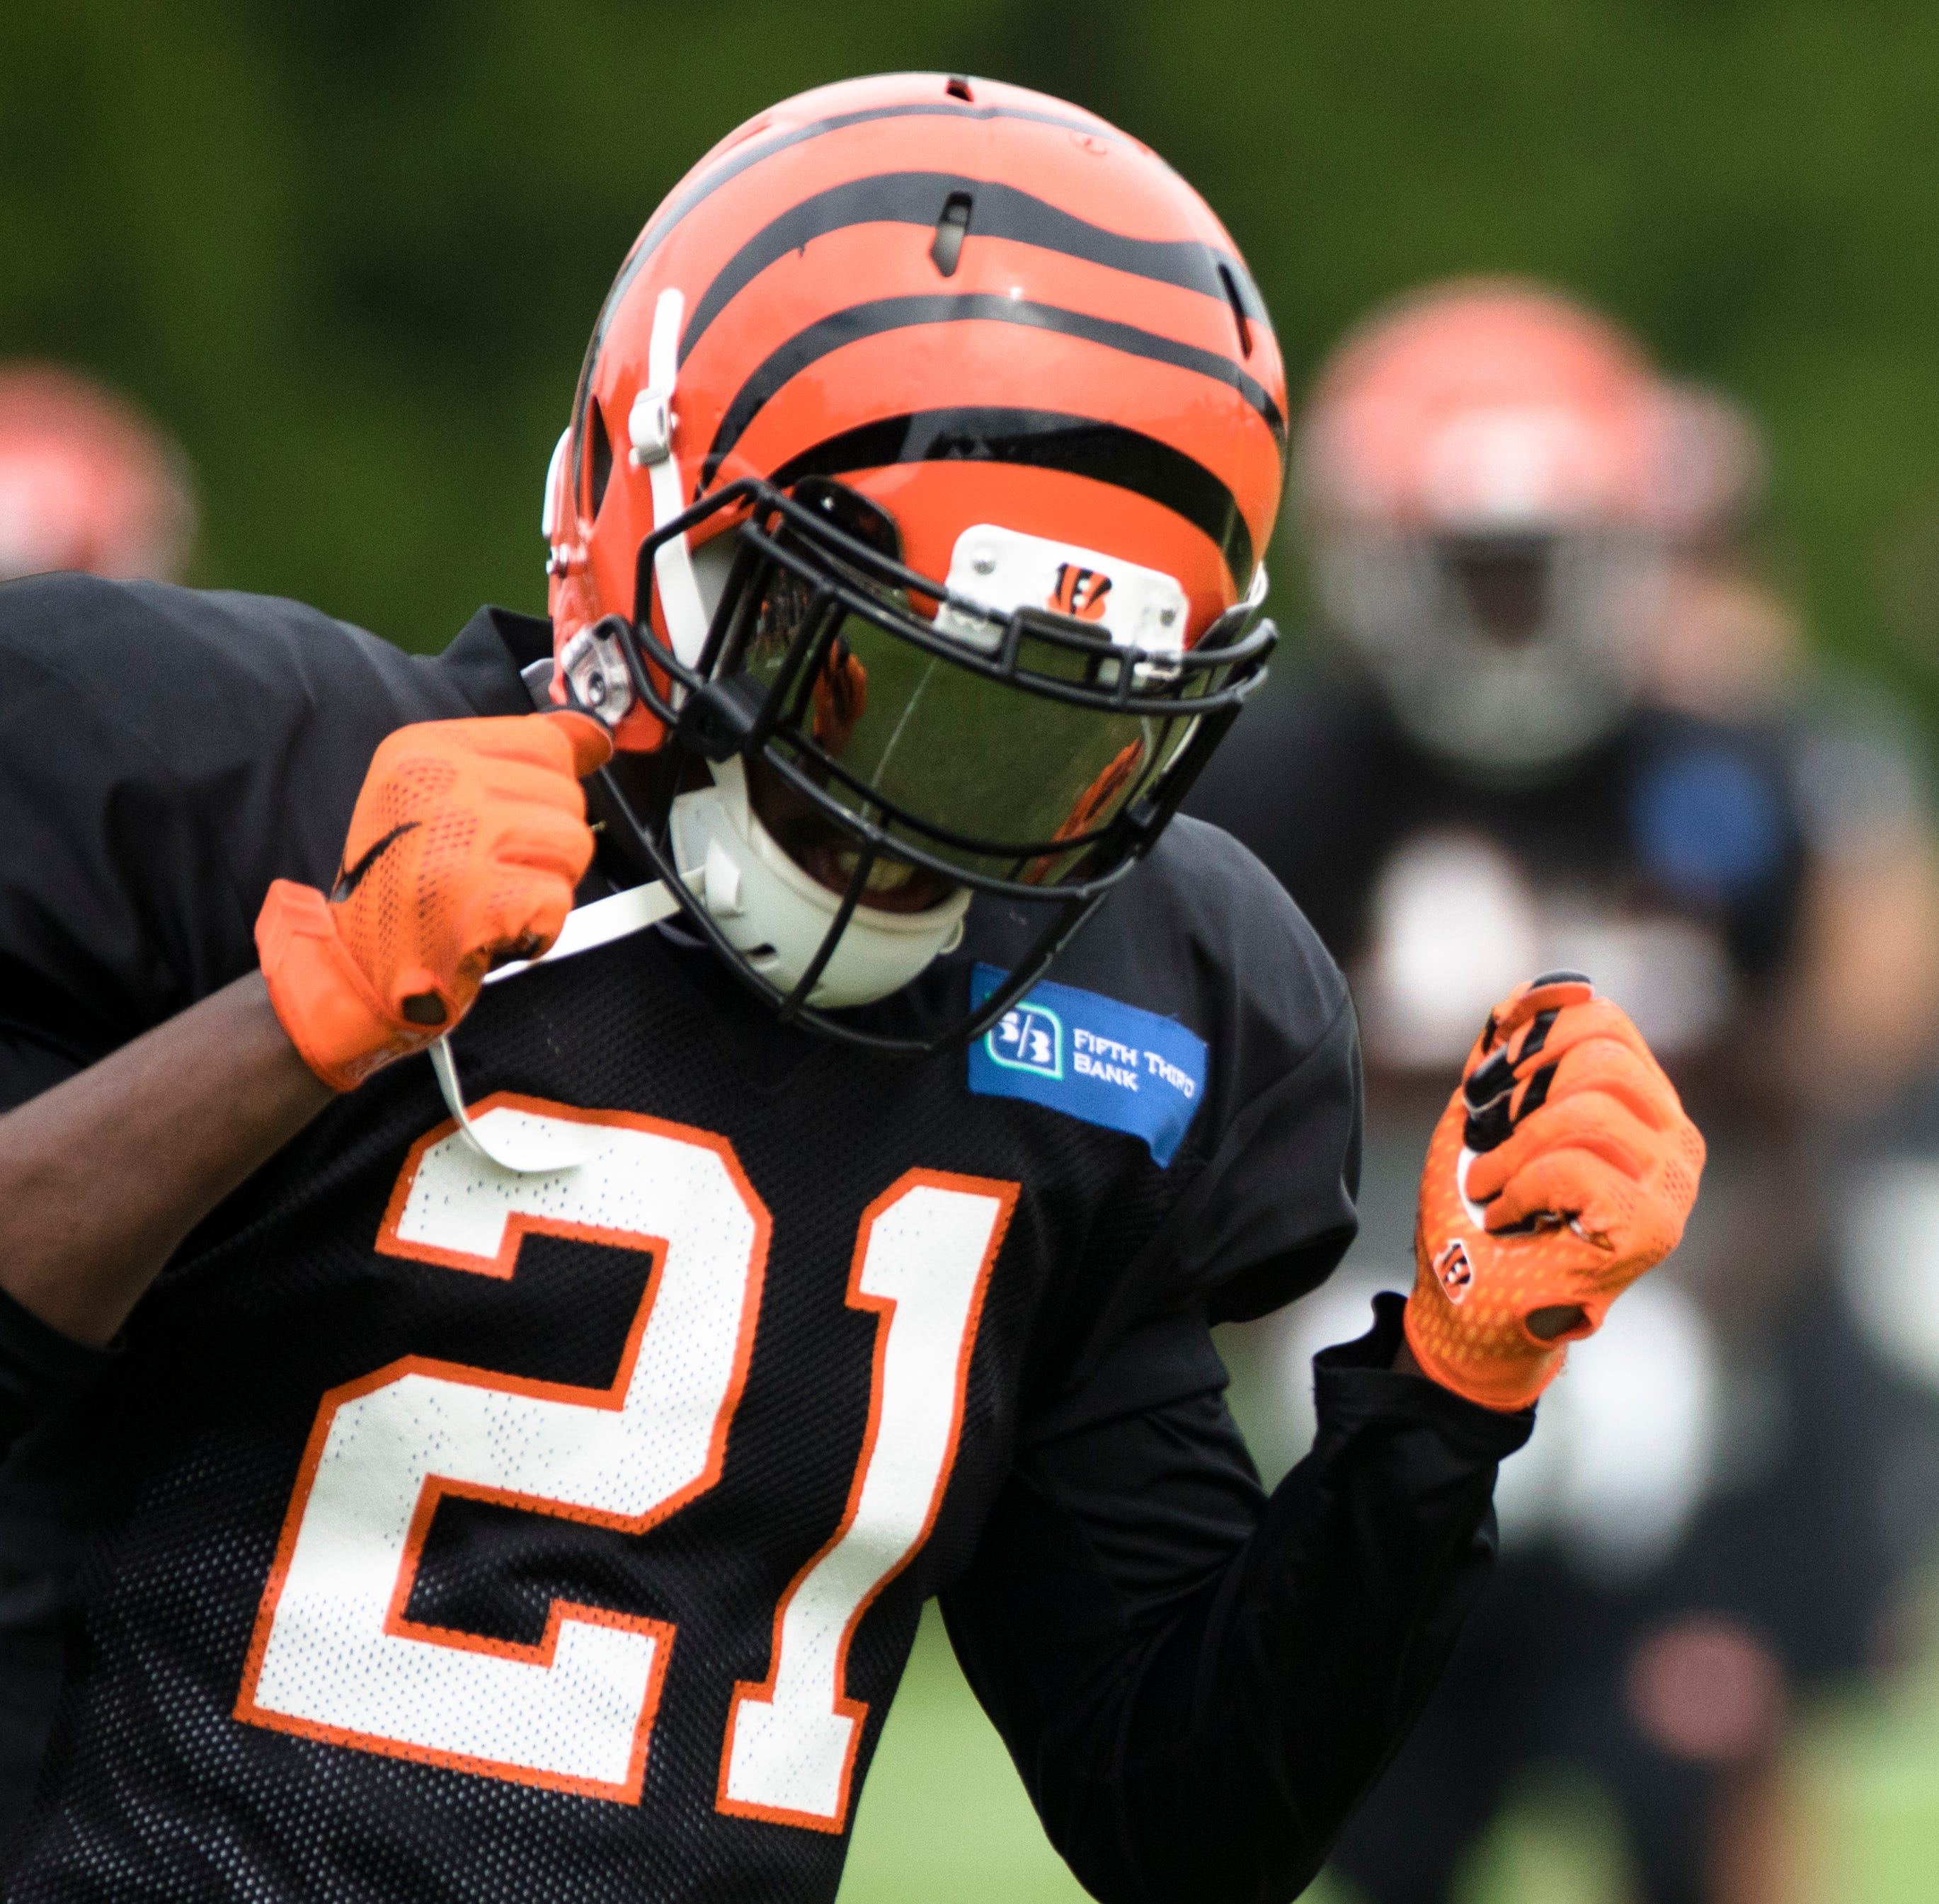 Darqueze Dennard hangs in balance as new NFL year begins for Cincinnati Bengals